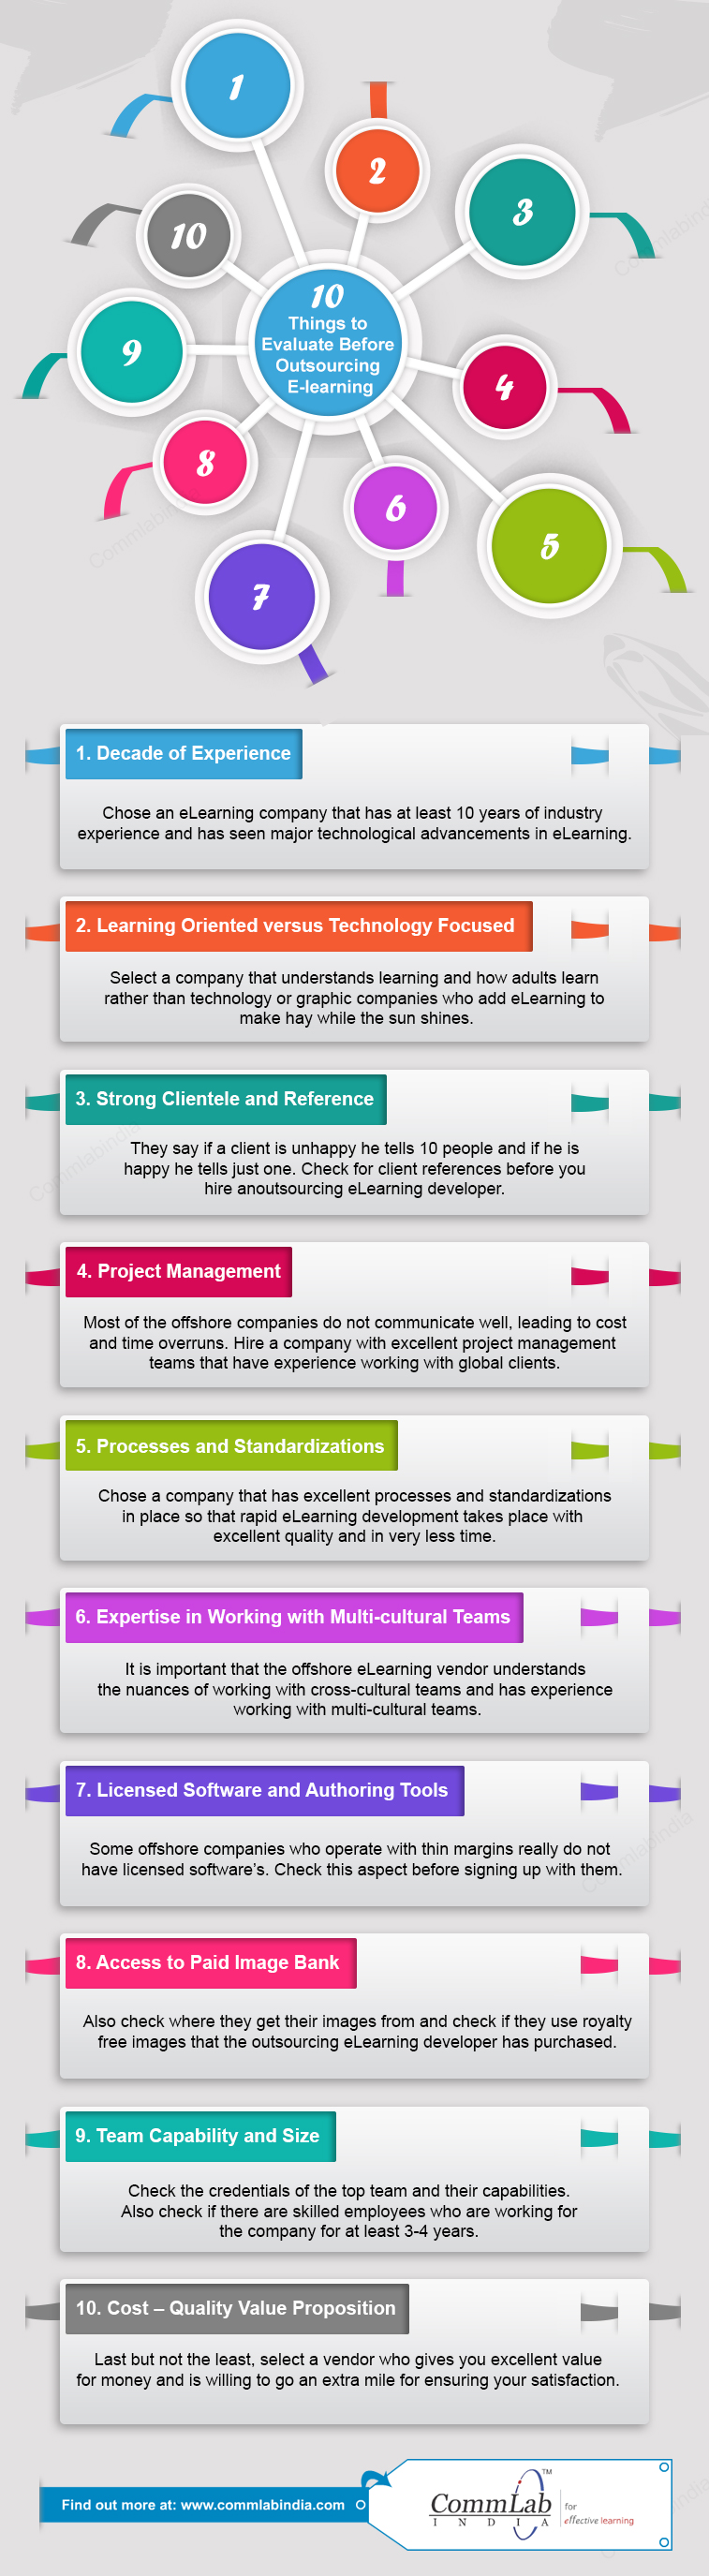 10 Things to Remember Before Outsourcing Your E-learning Project – An Infographic